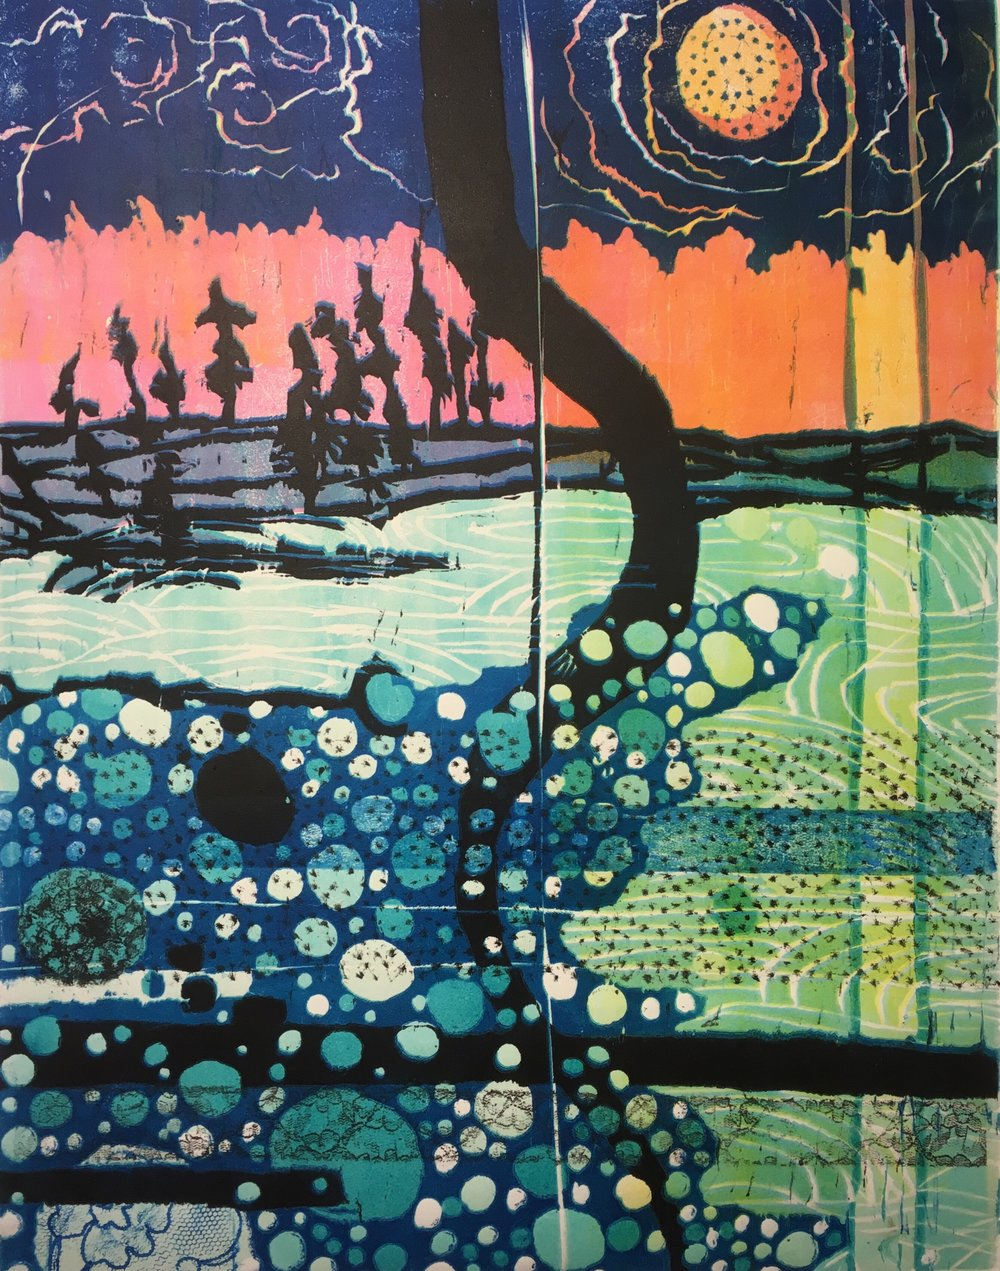 BeckyHeimann-Running the River, woodblock print, 2017 .jpg